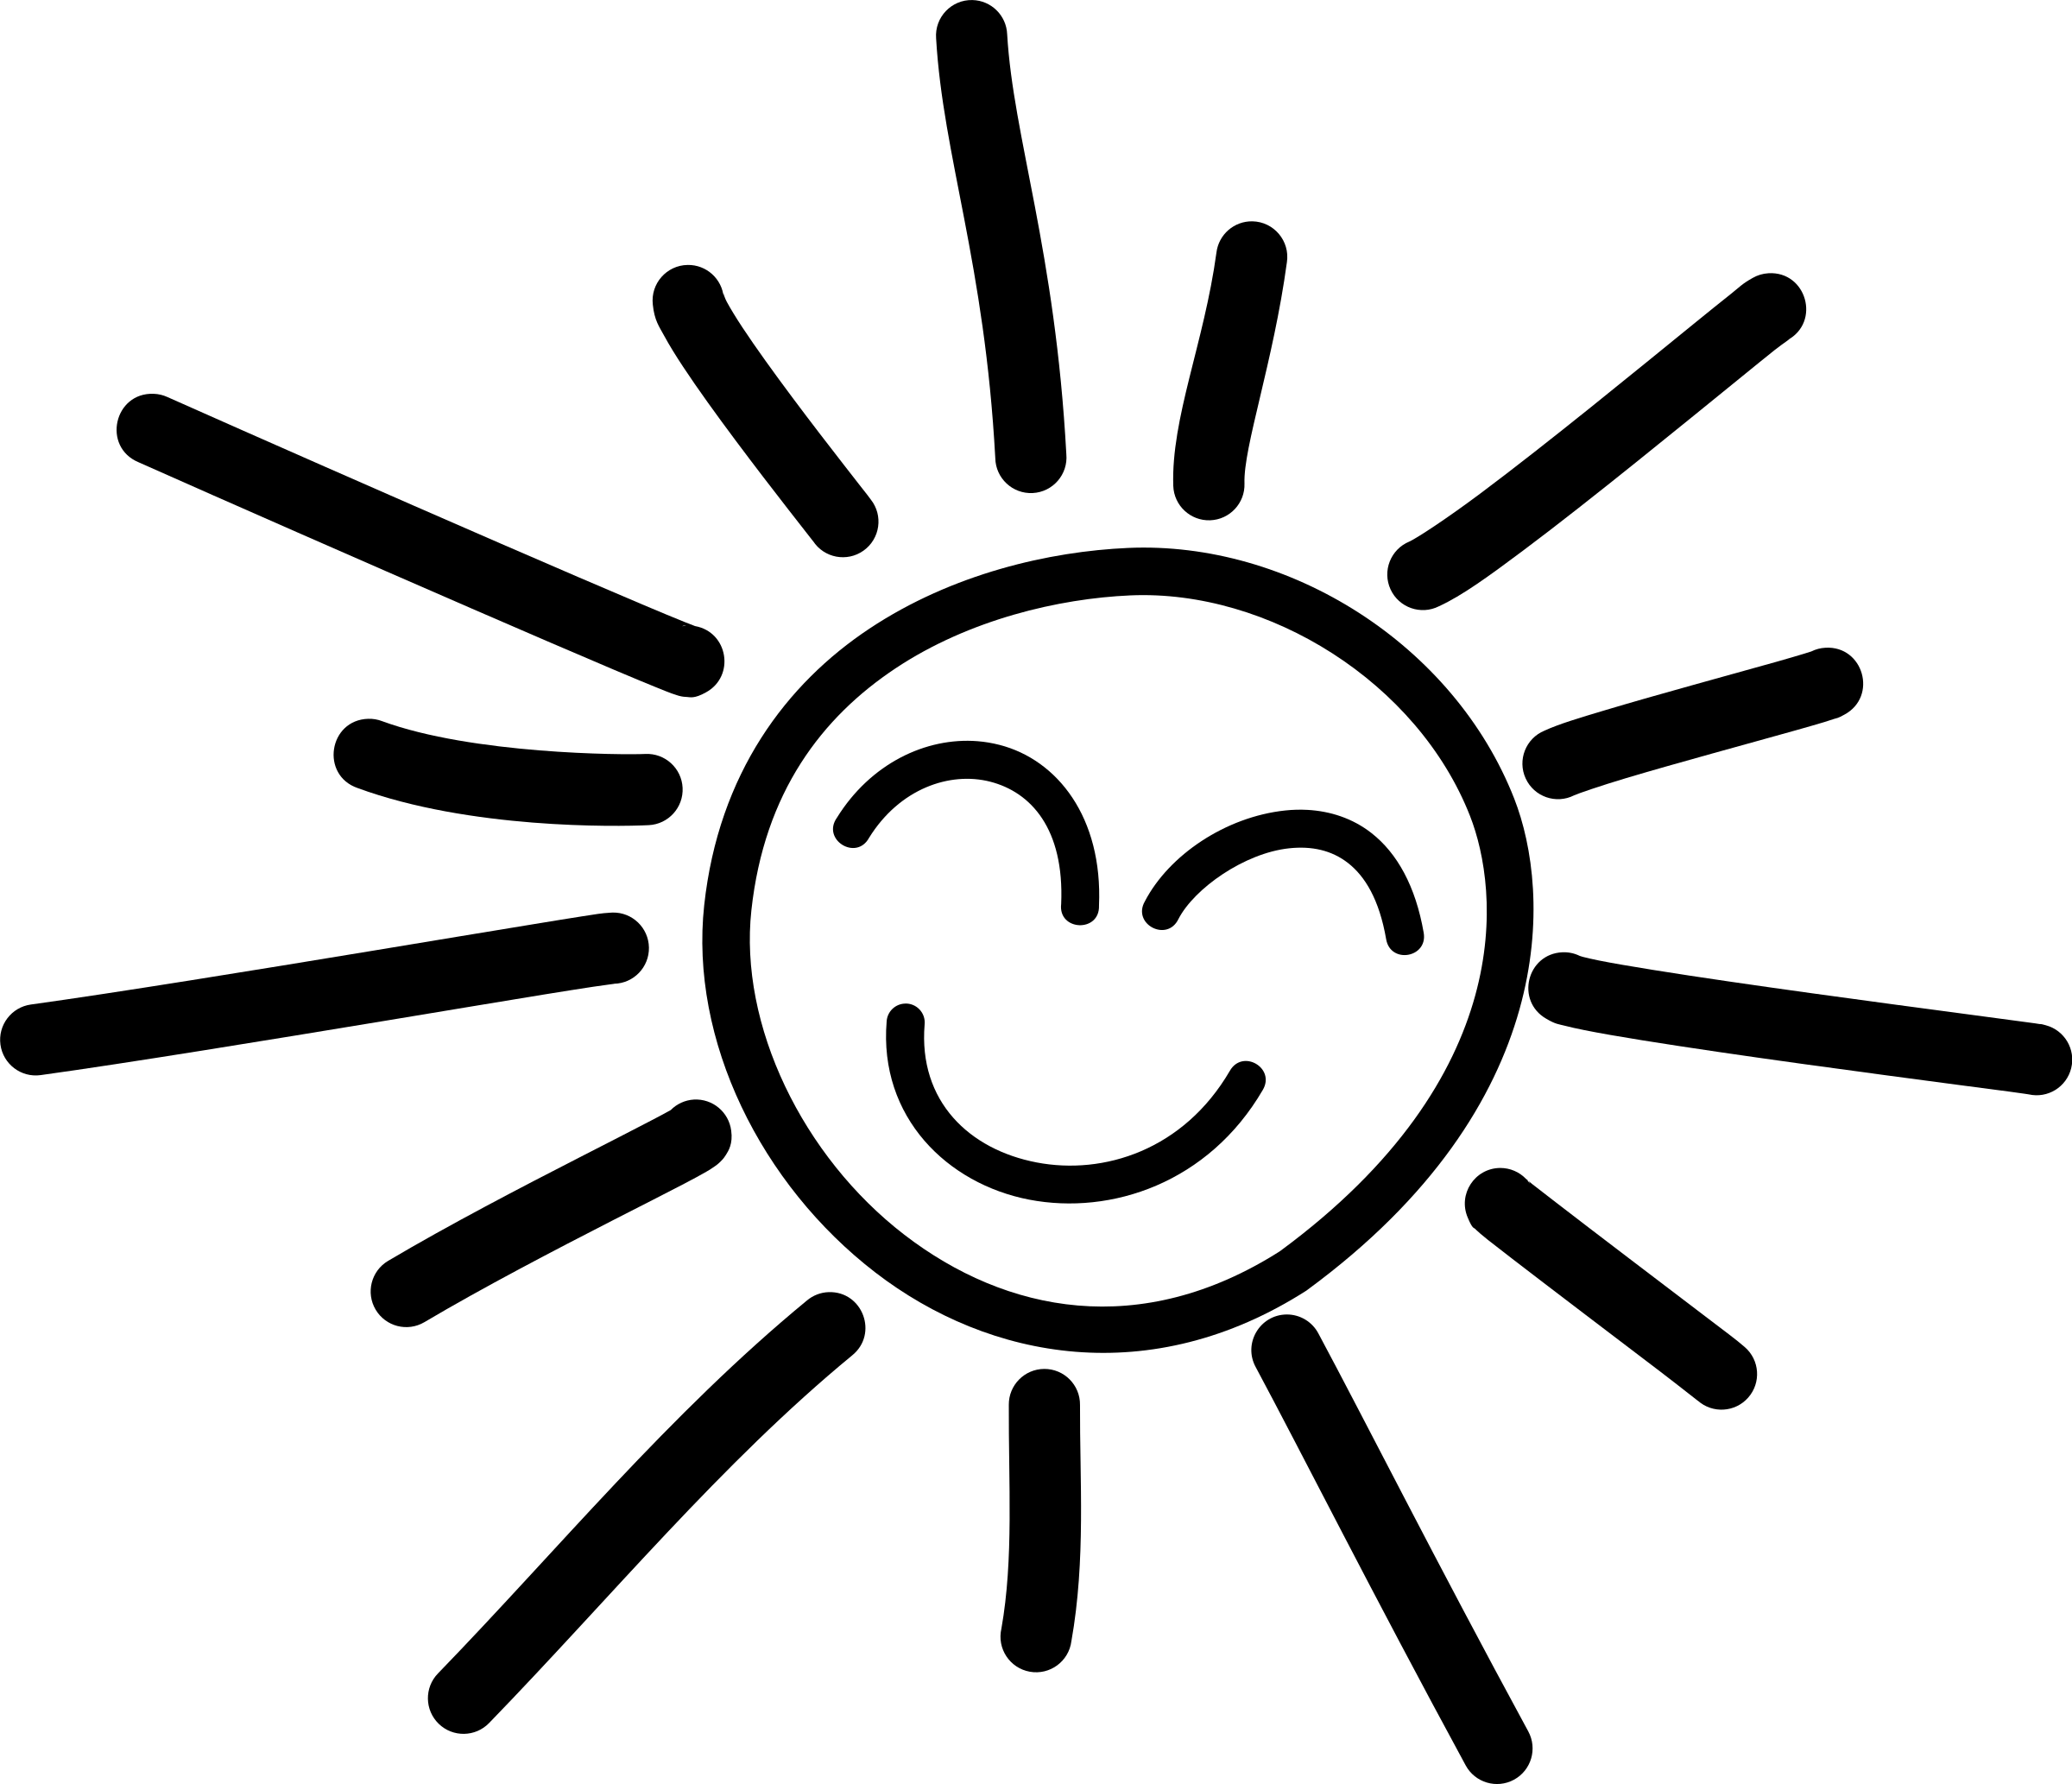 graphic library download Happy png no background. Half sun clipart black and white